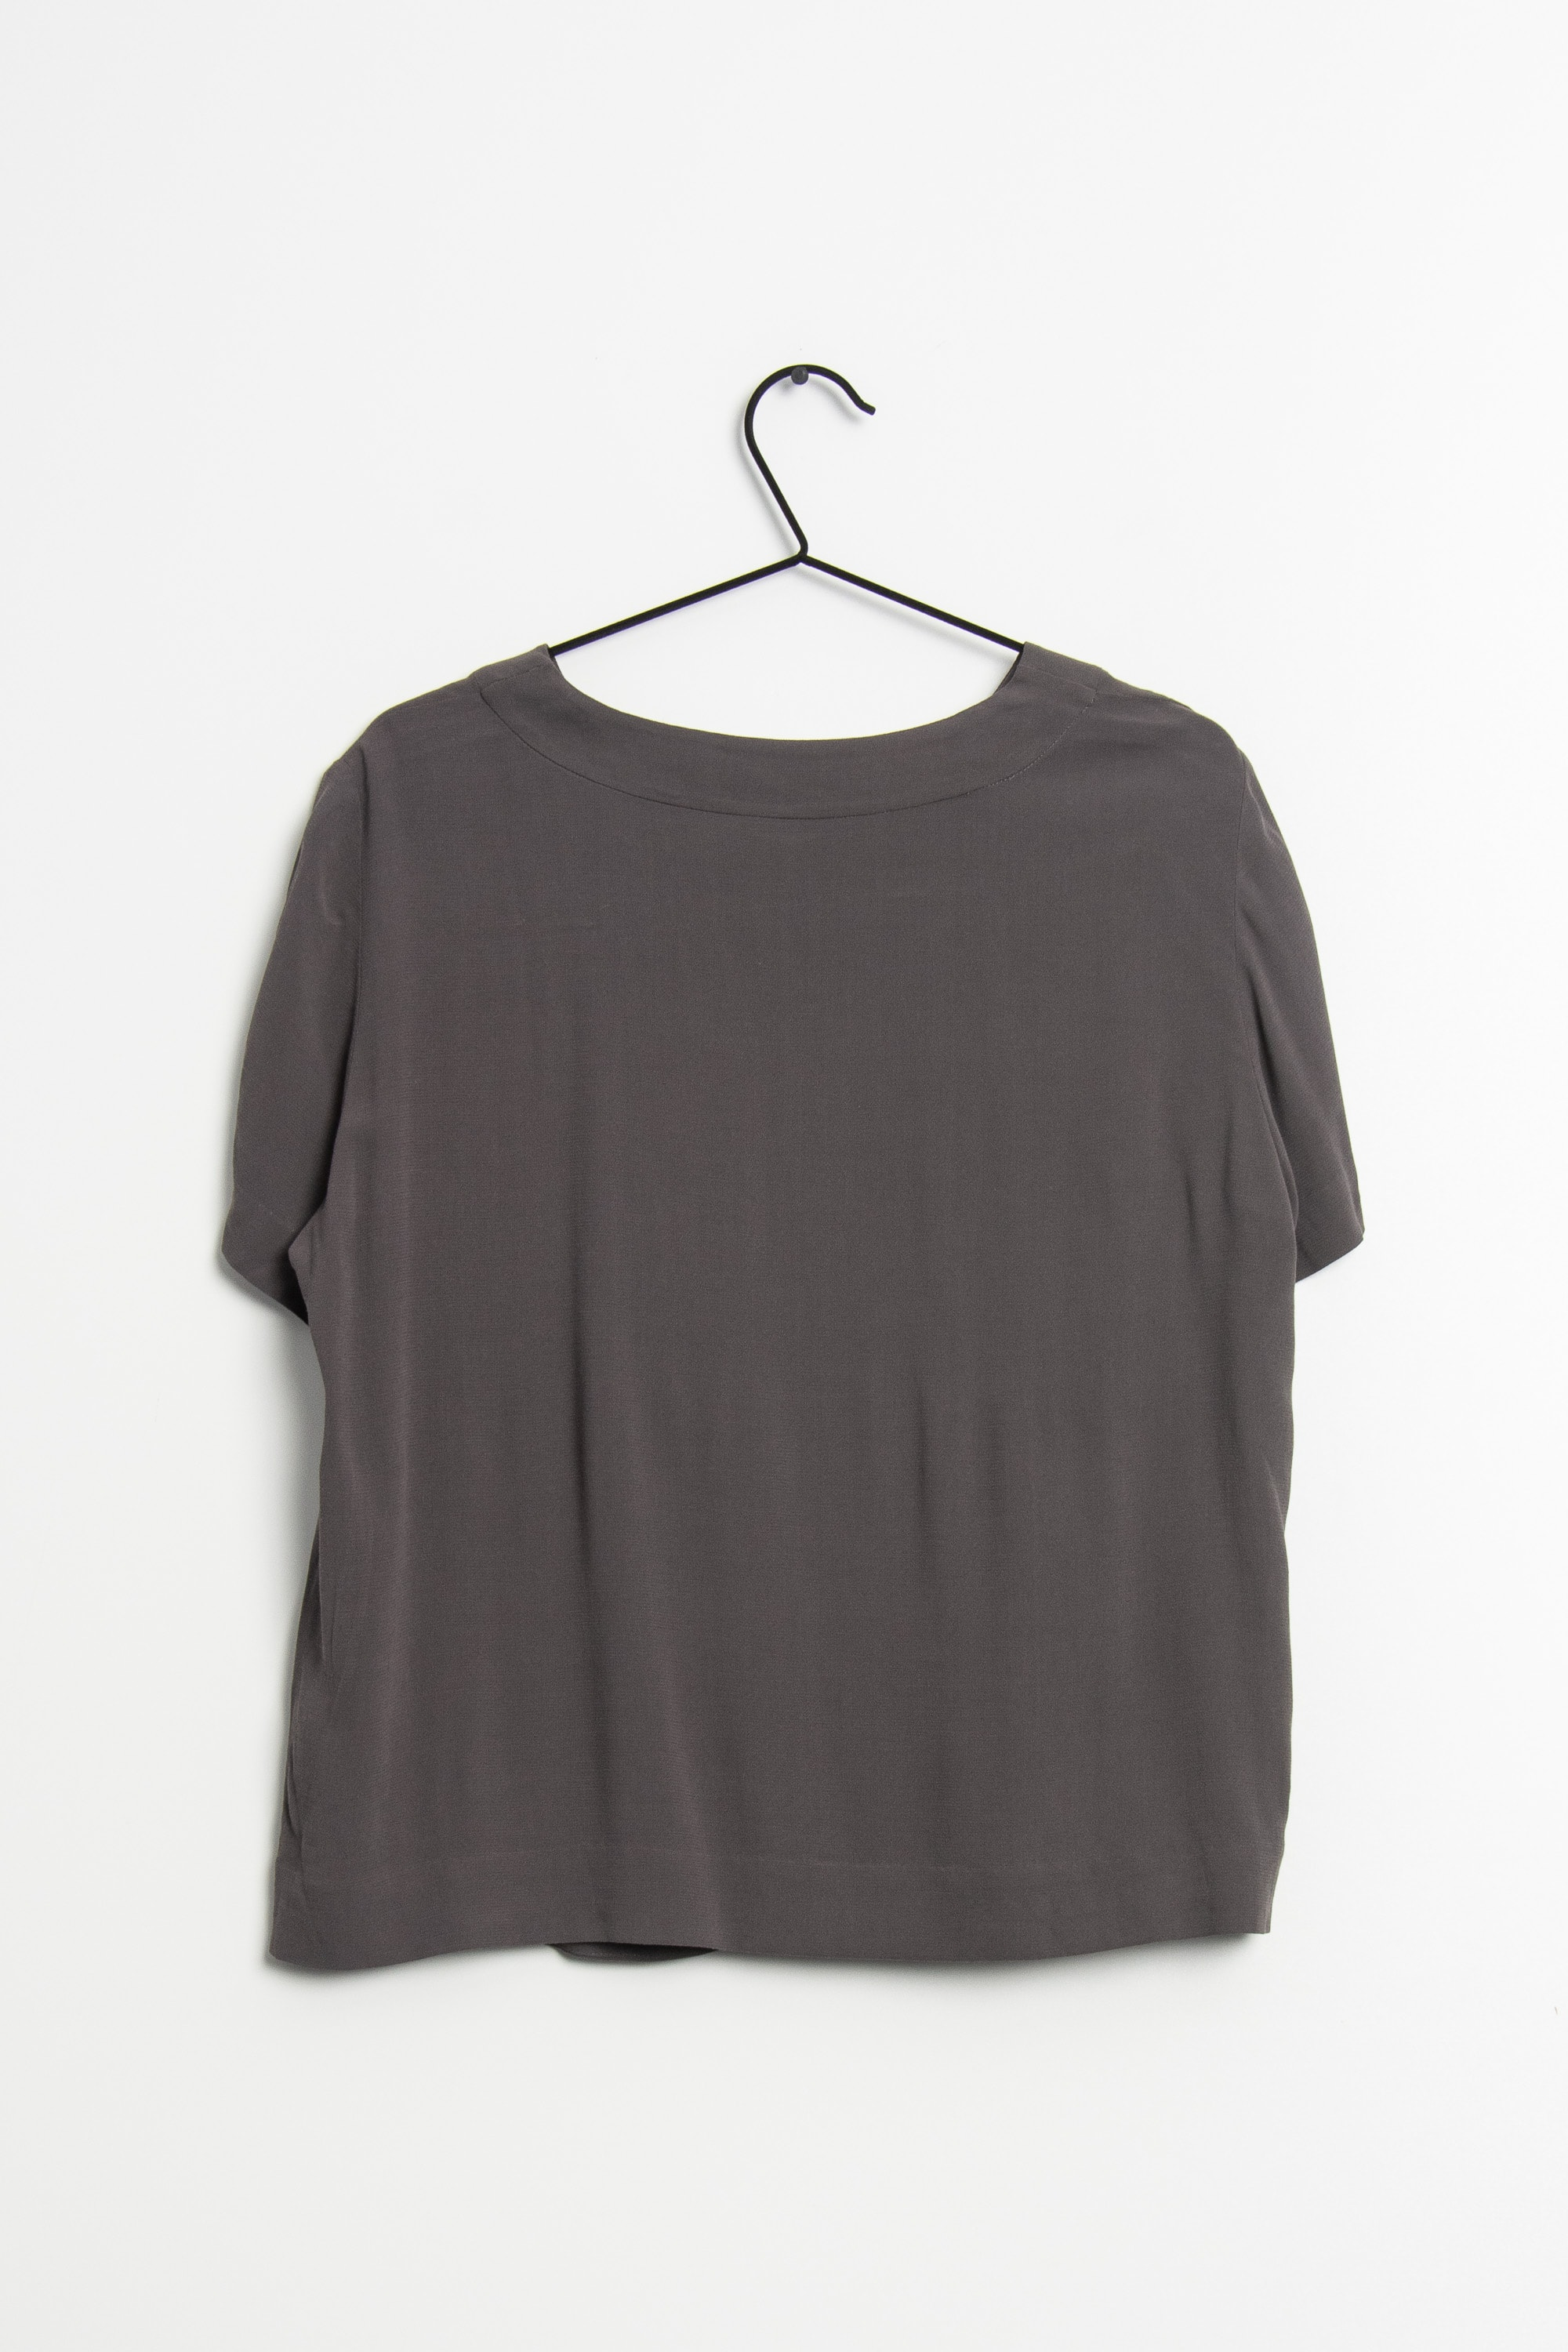 & other stories Bluse Grau Gr.40